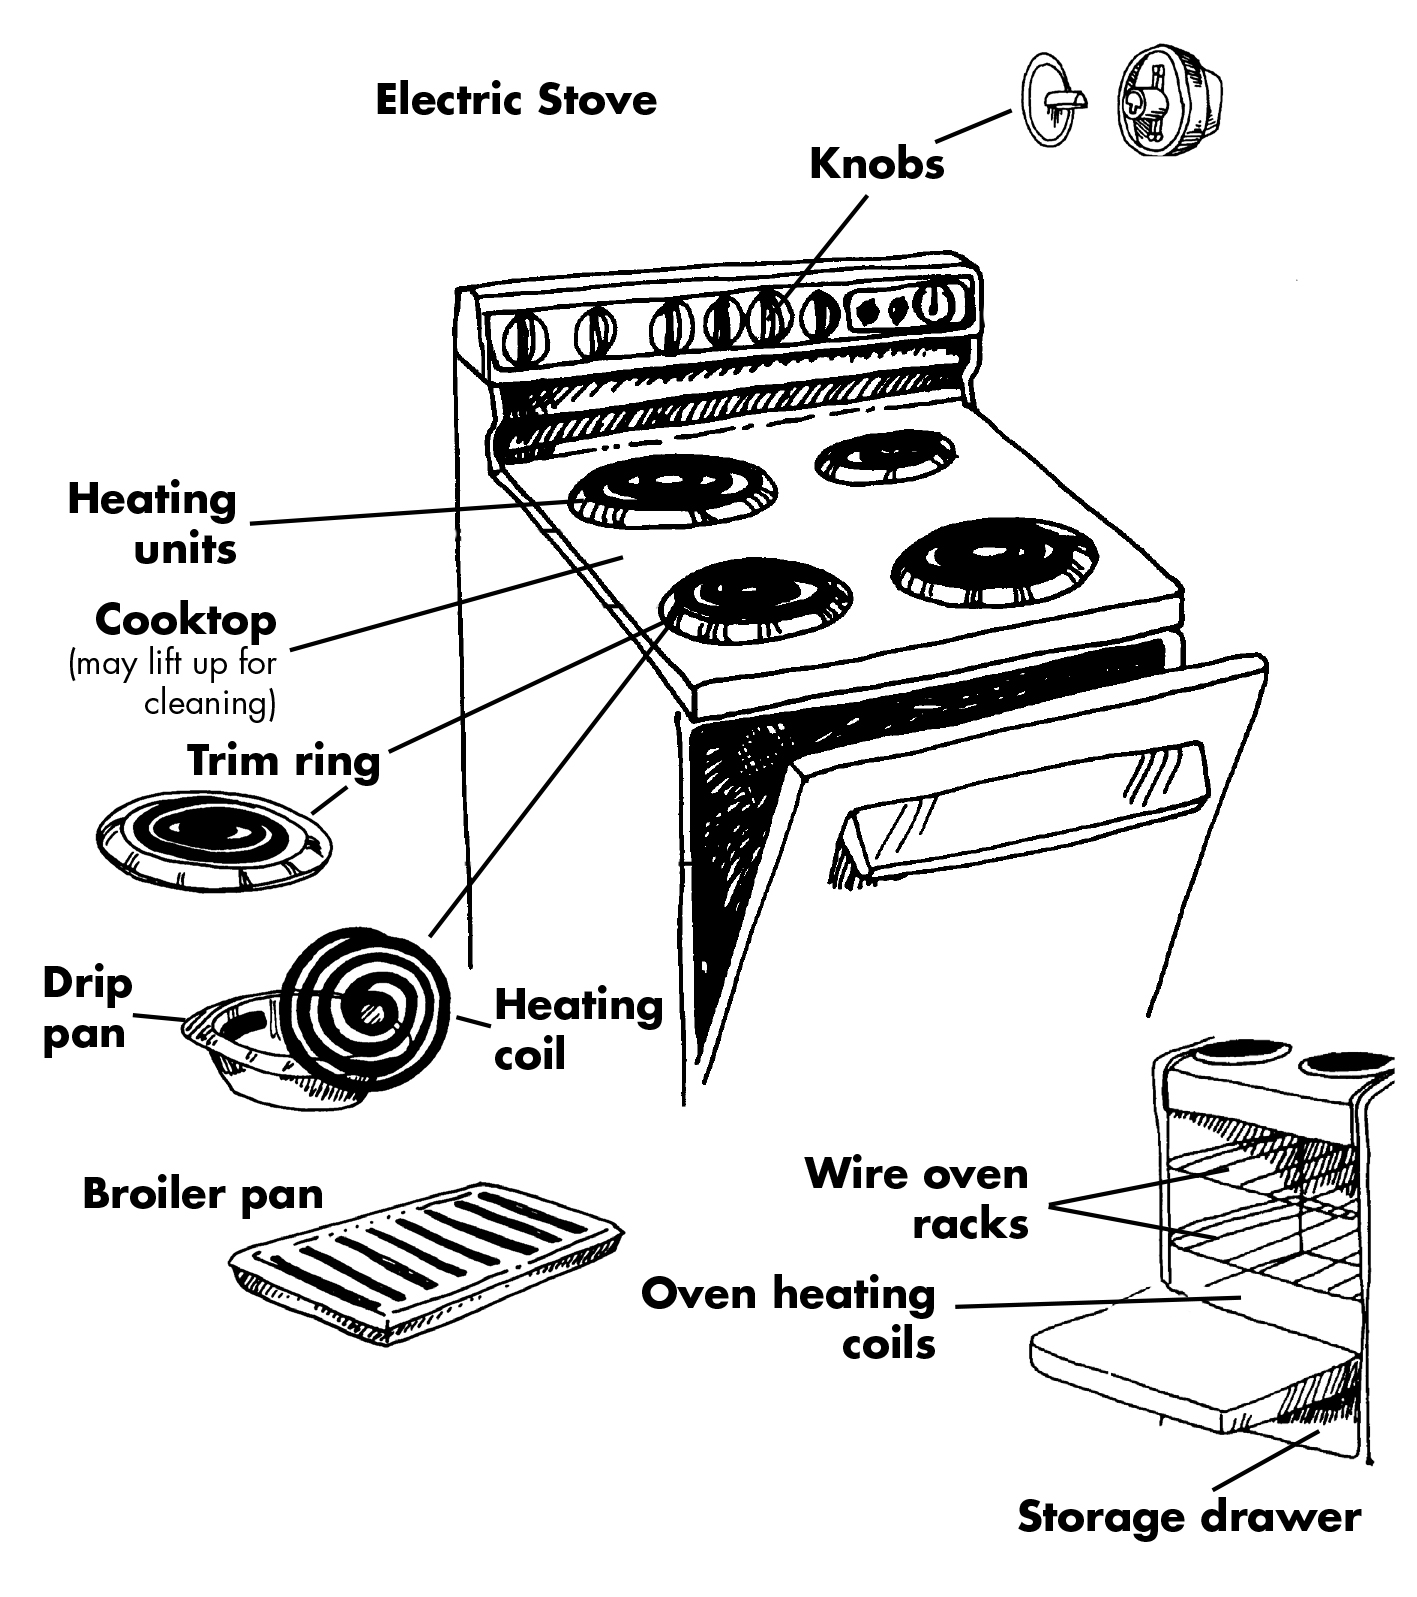 Stove with parts illustrated